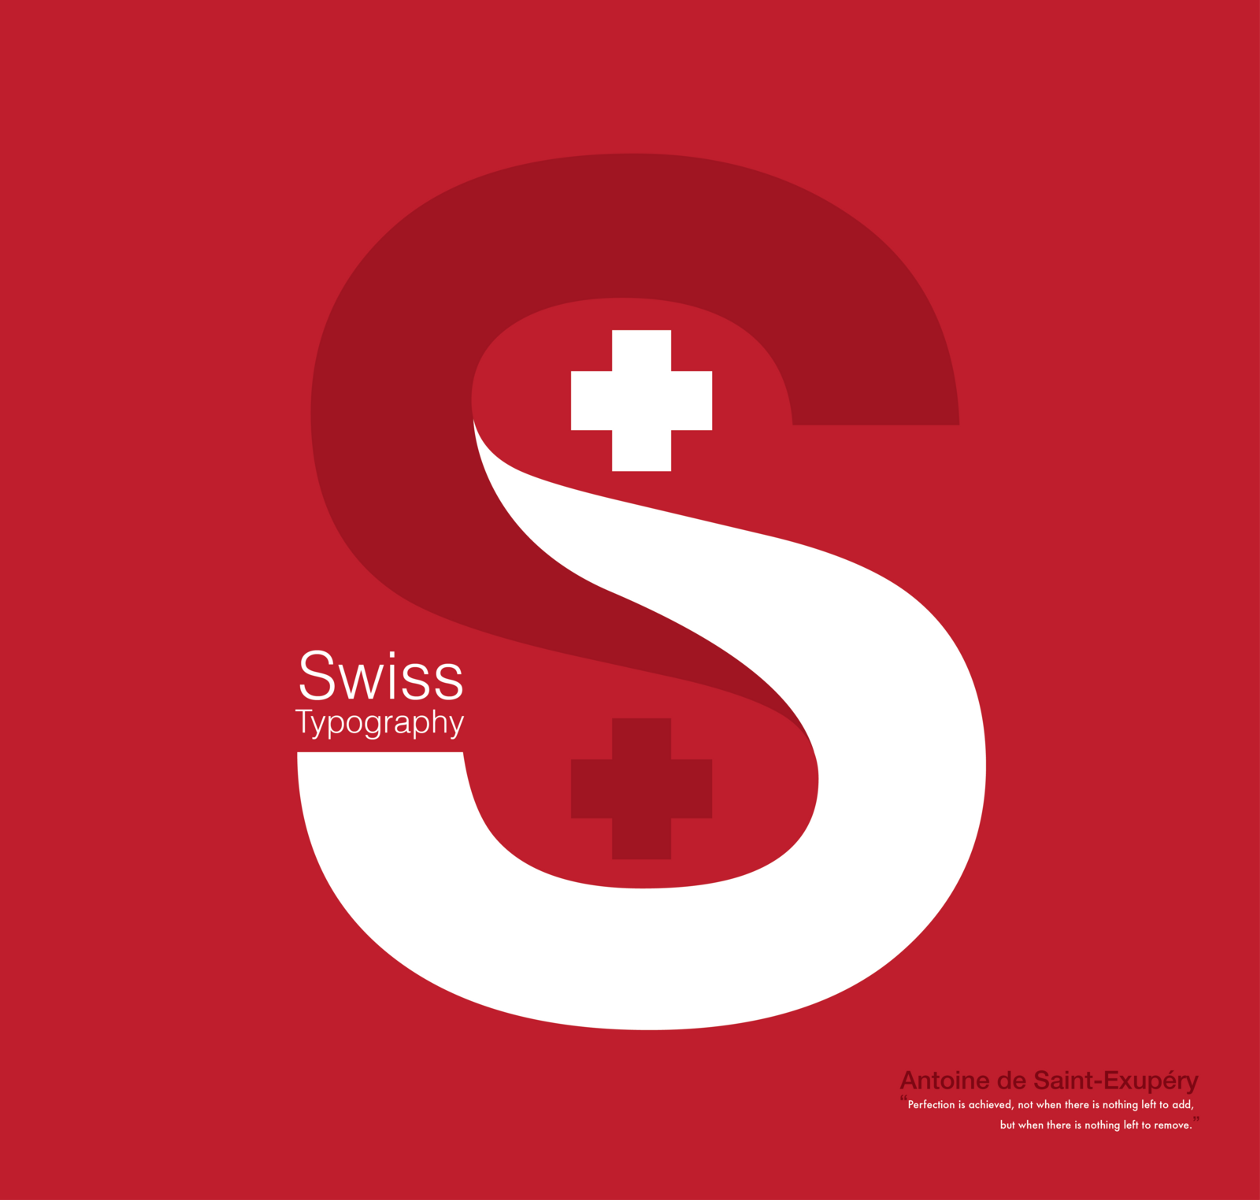 flat-design-swiss-style-international-typographic-style